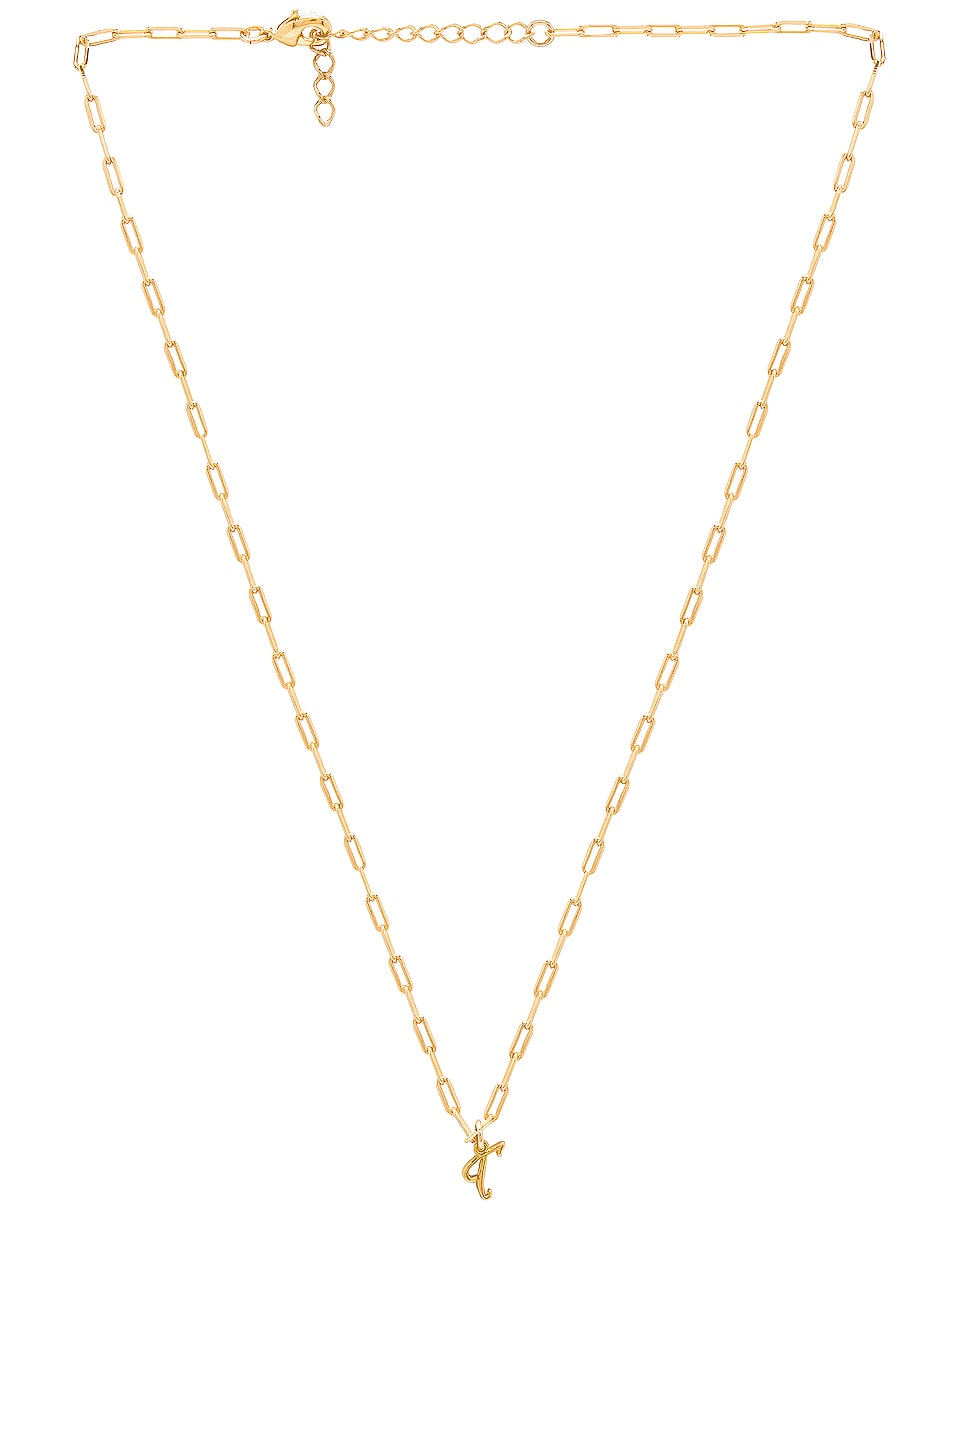 joolz by Martha Calvo T Initial Necklace in Gold